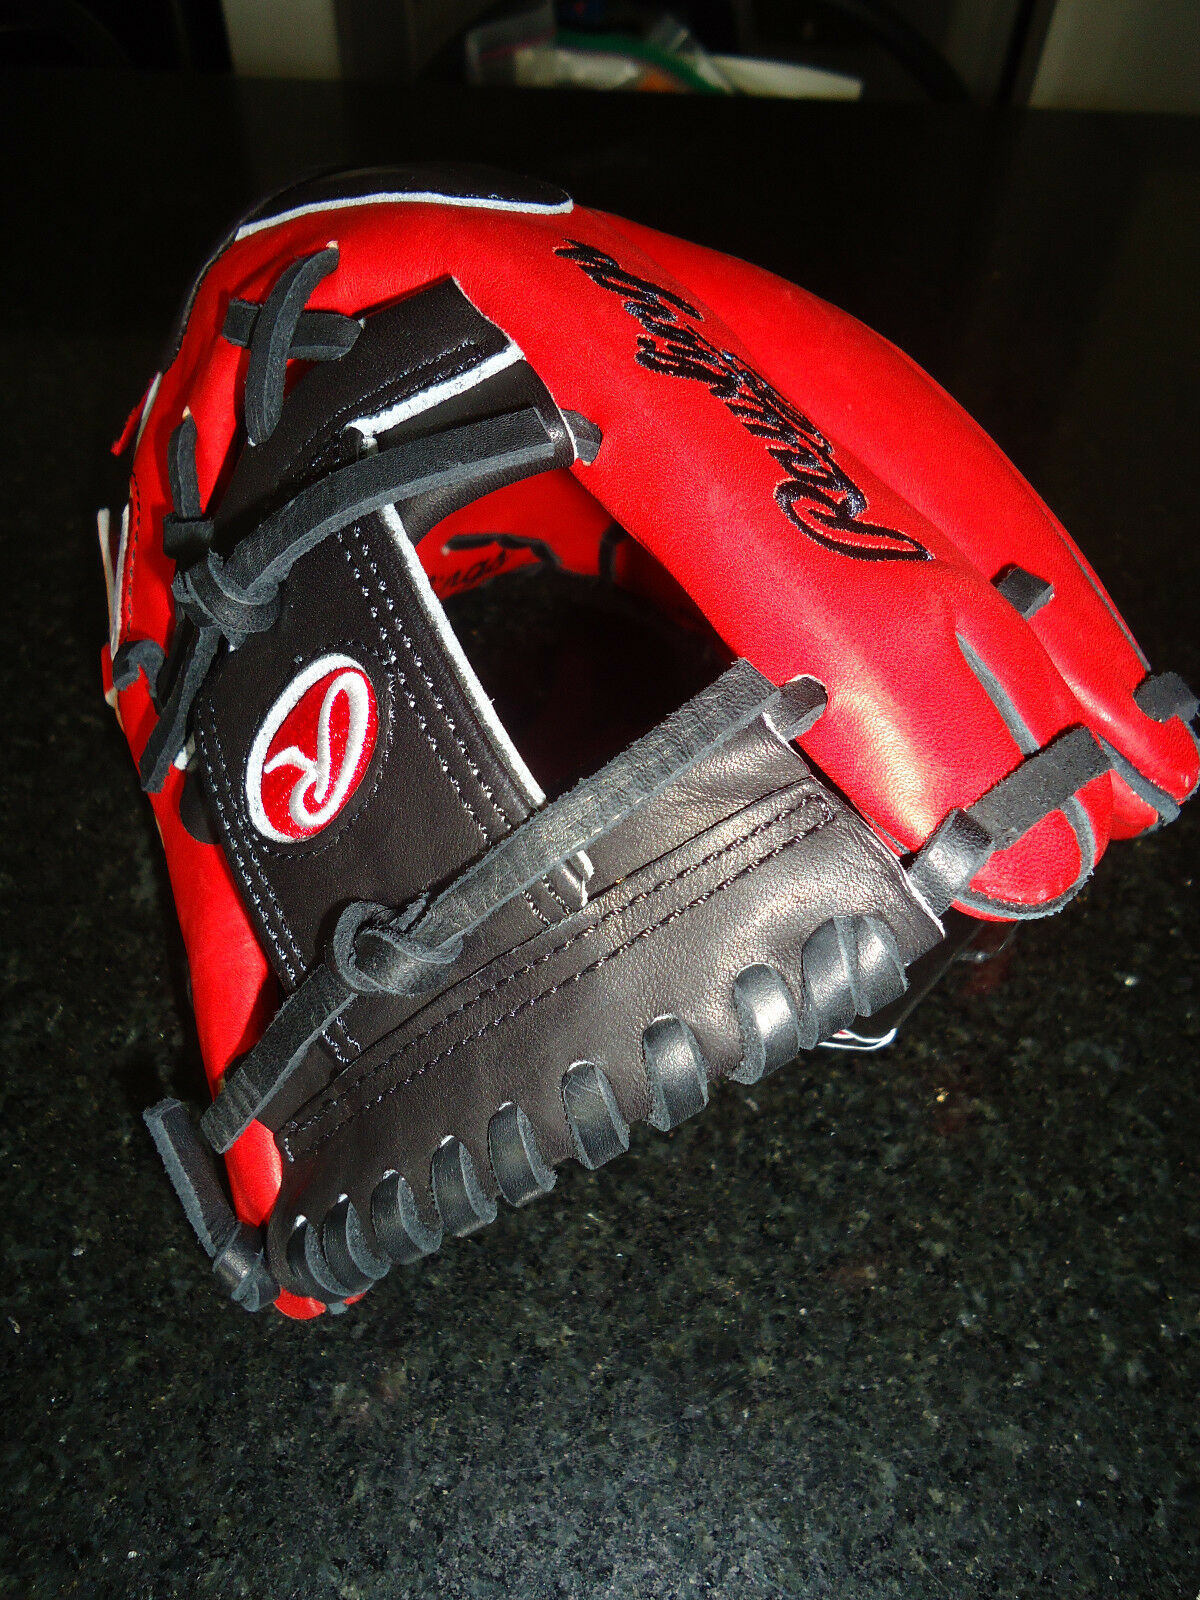 RAWLINGS HEART OF THE HIDE (HOH) PRO202SB LIMITED EDITION EDITION LIMITED GLOVE 11.5